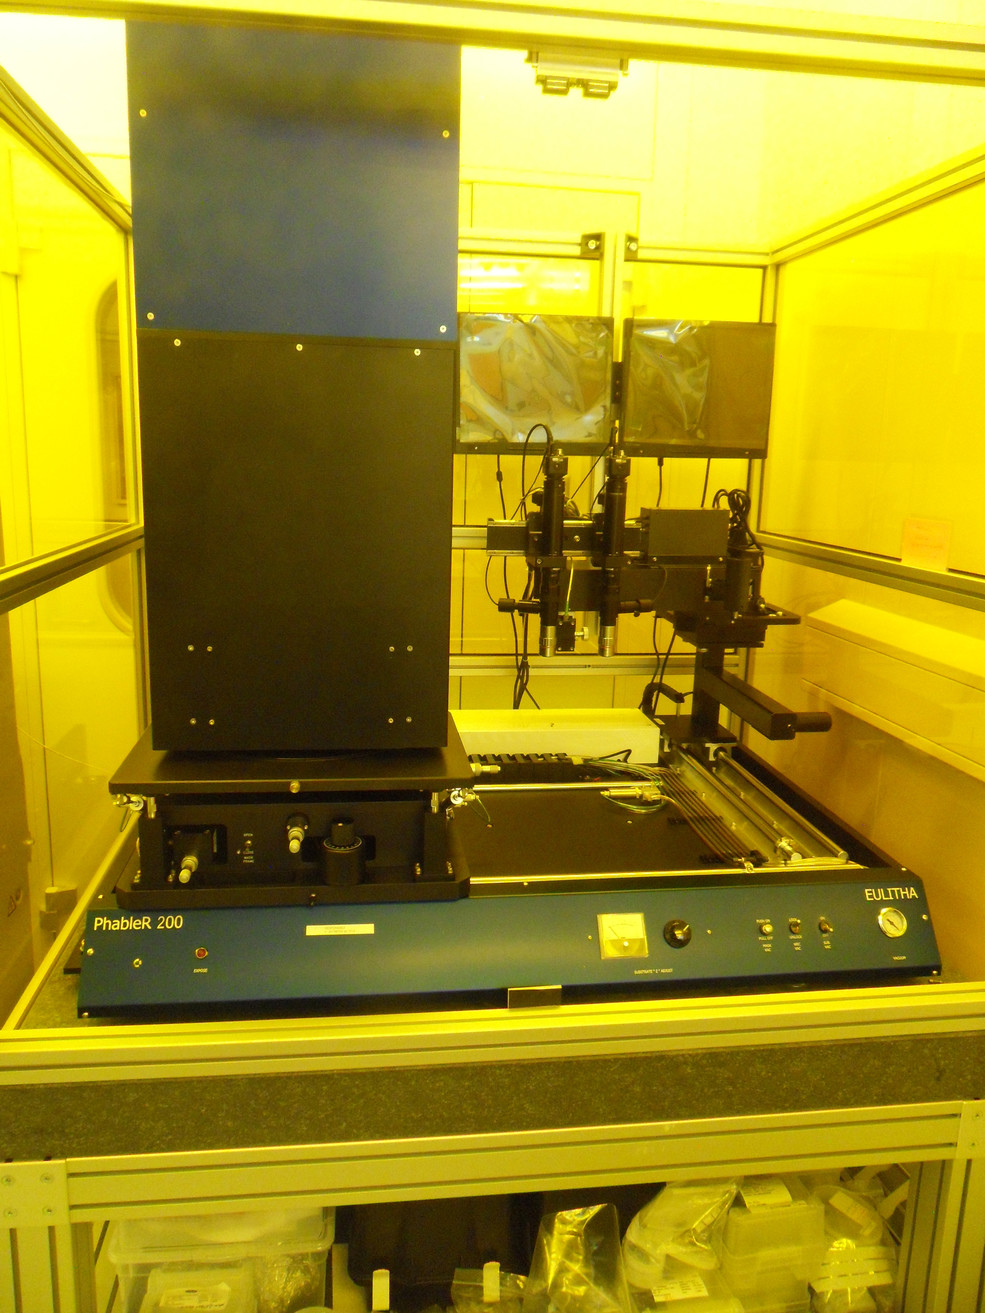 Phable R200: Talbot interference Lithography